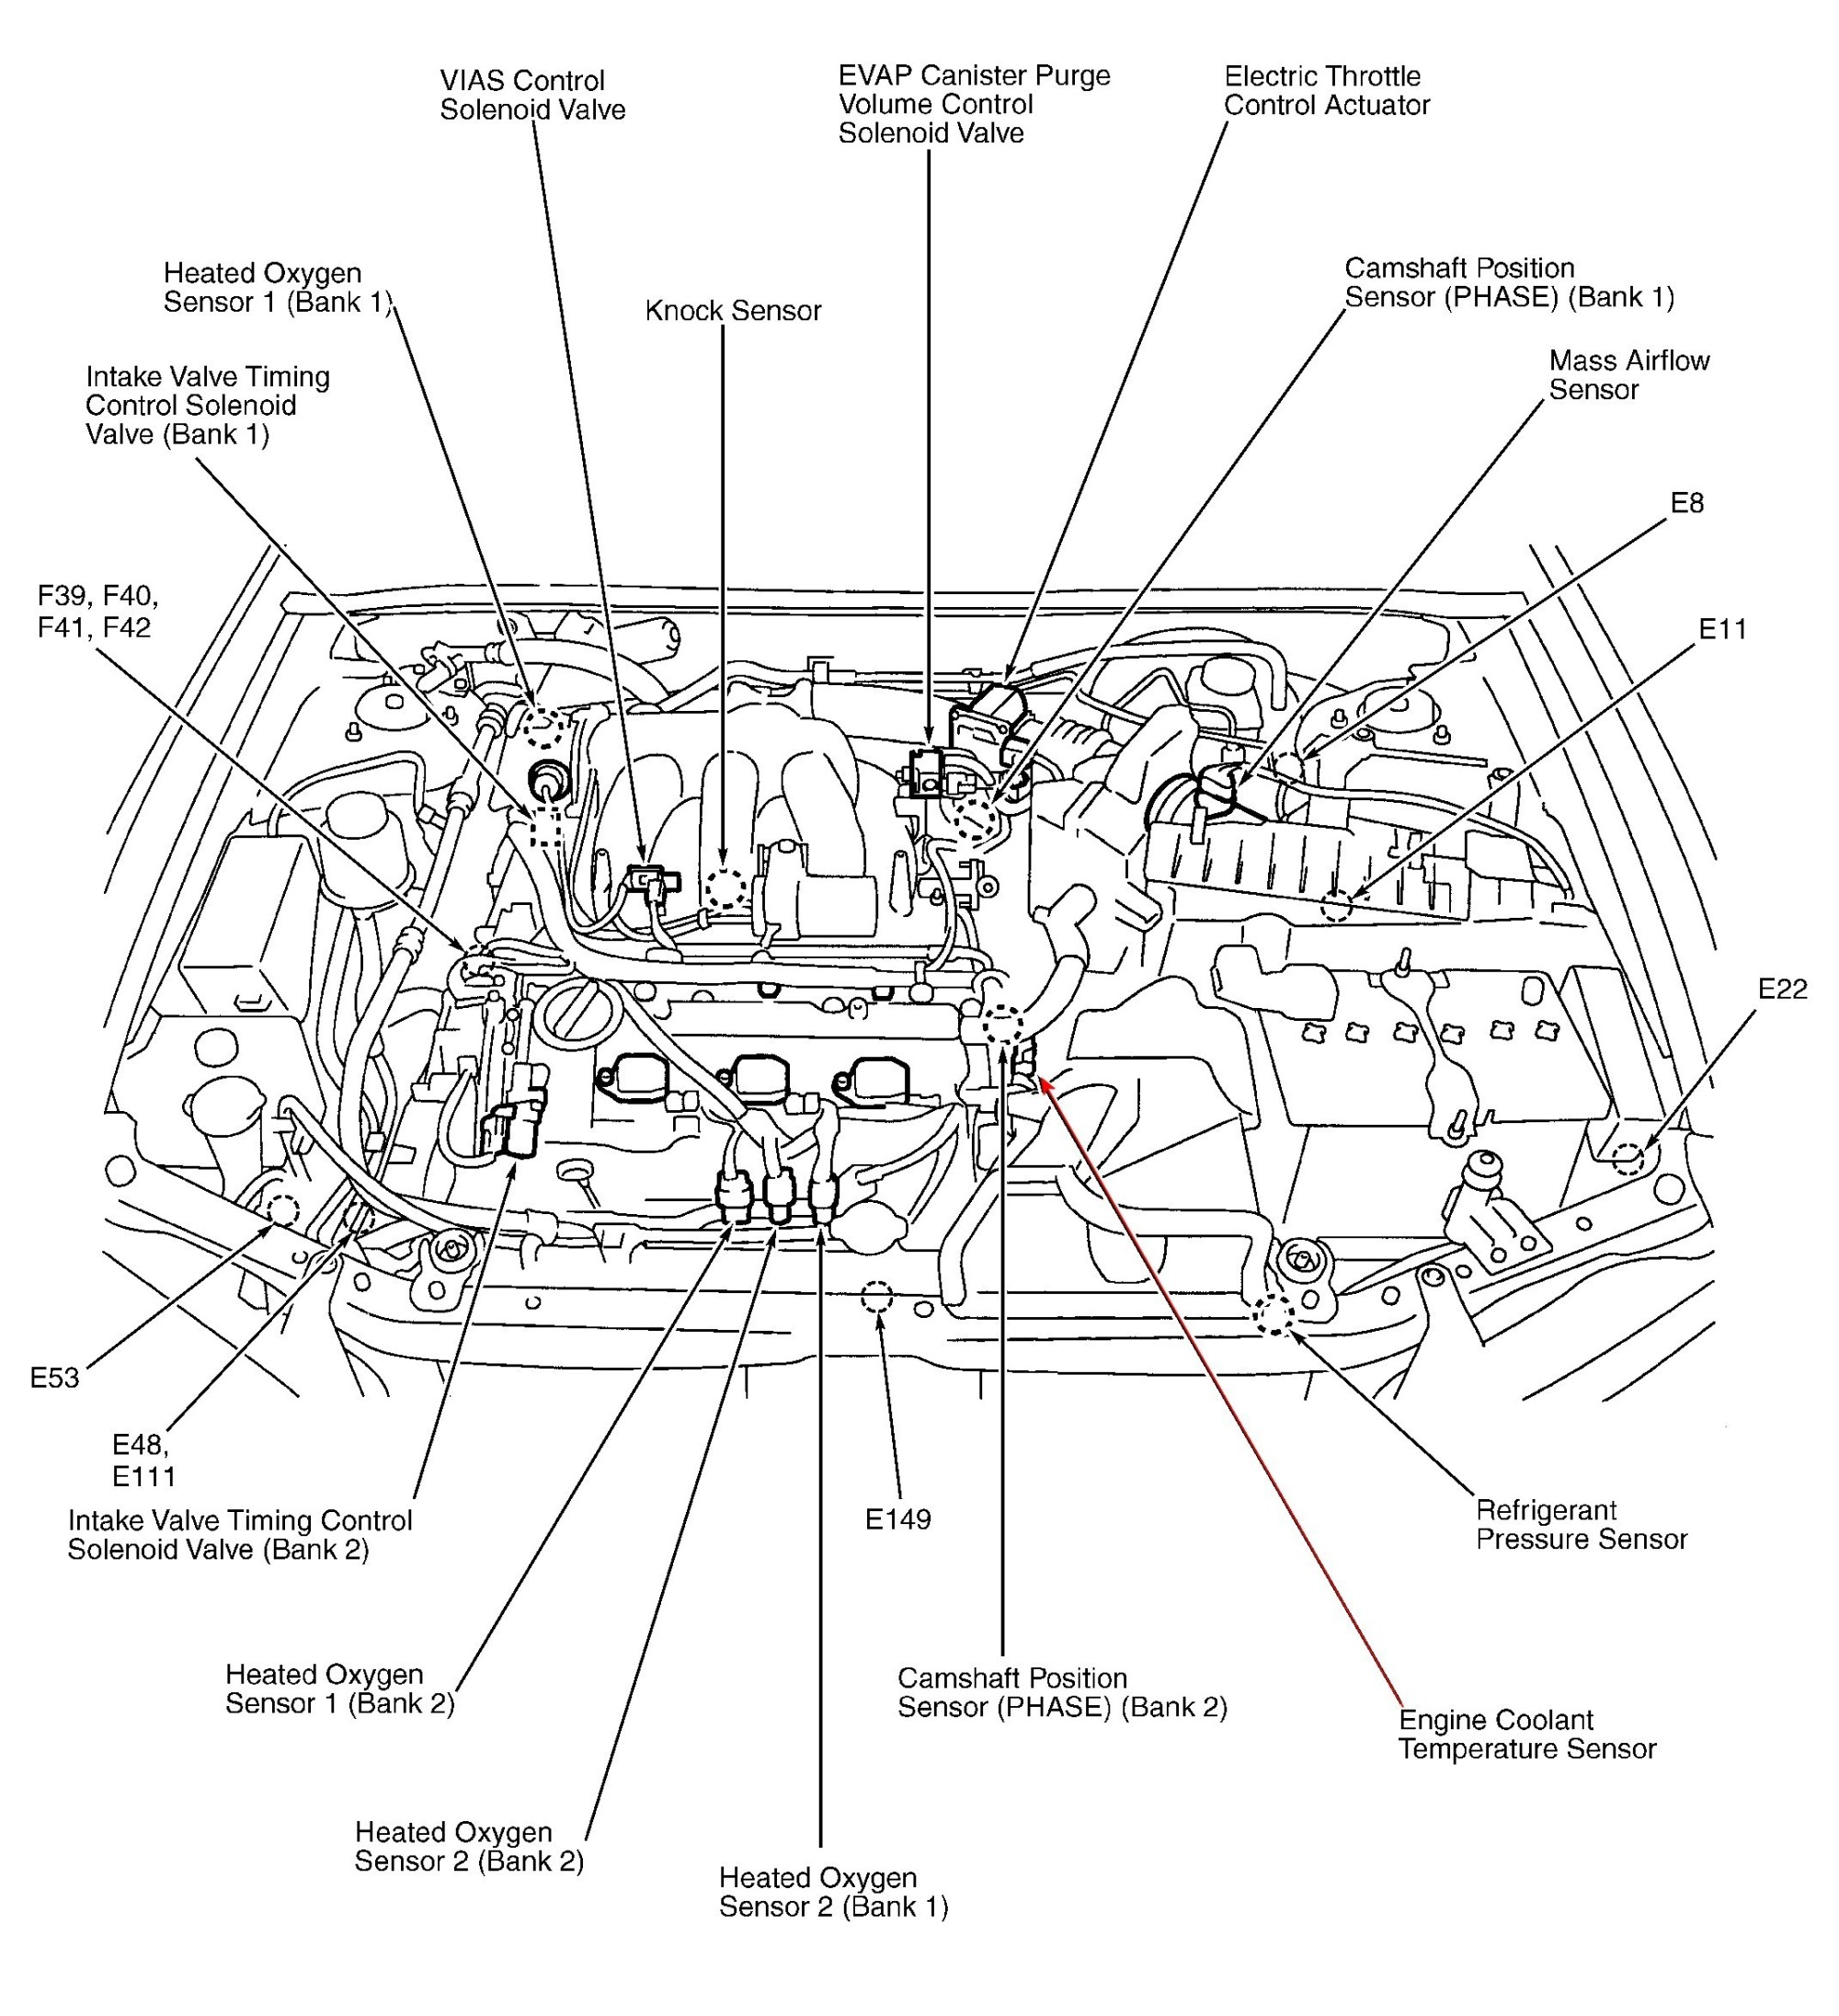 hight resolution of 2005 nissan altima revolution sensor wiring diagram 16 17 sg dbd de u2022nissan speed sensor